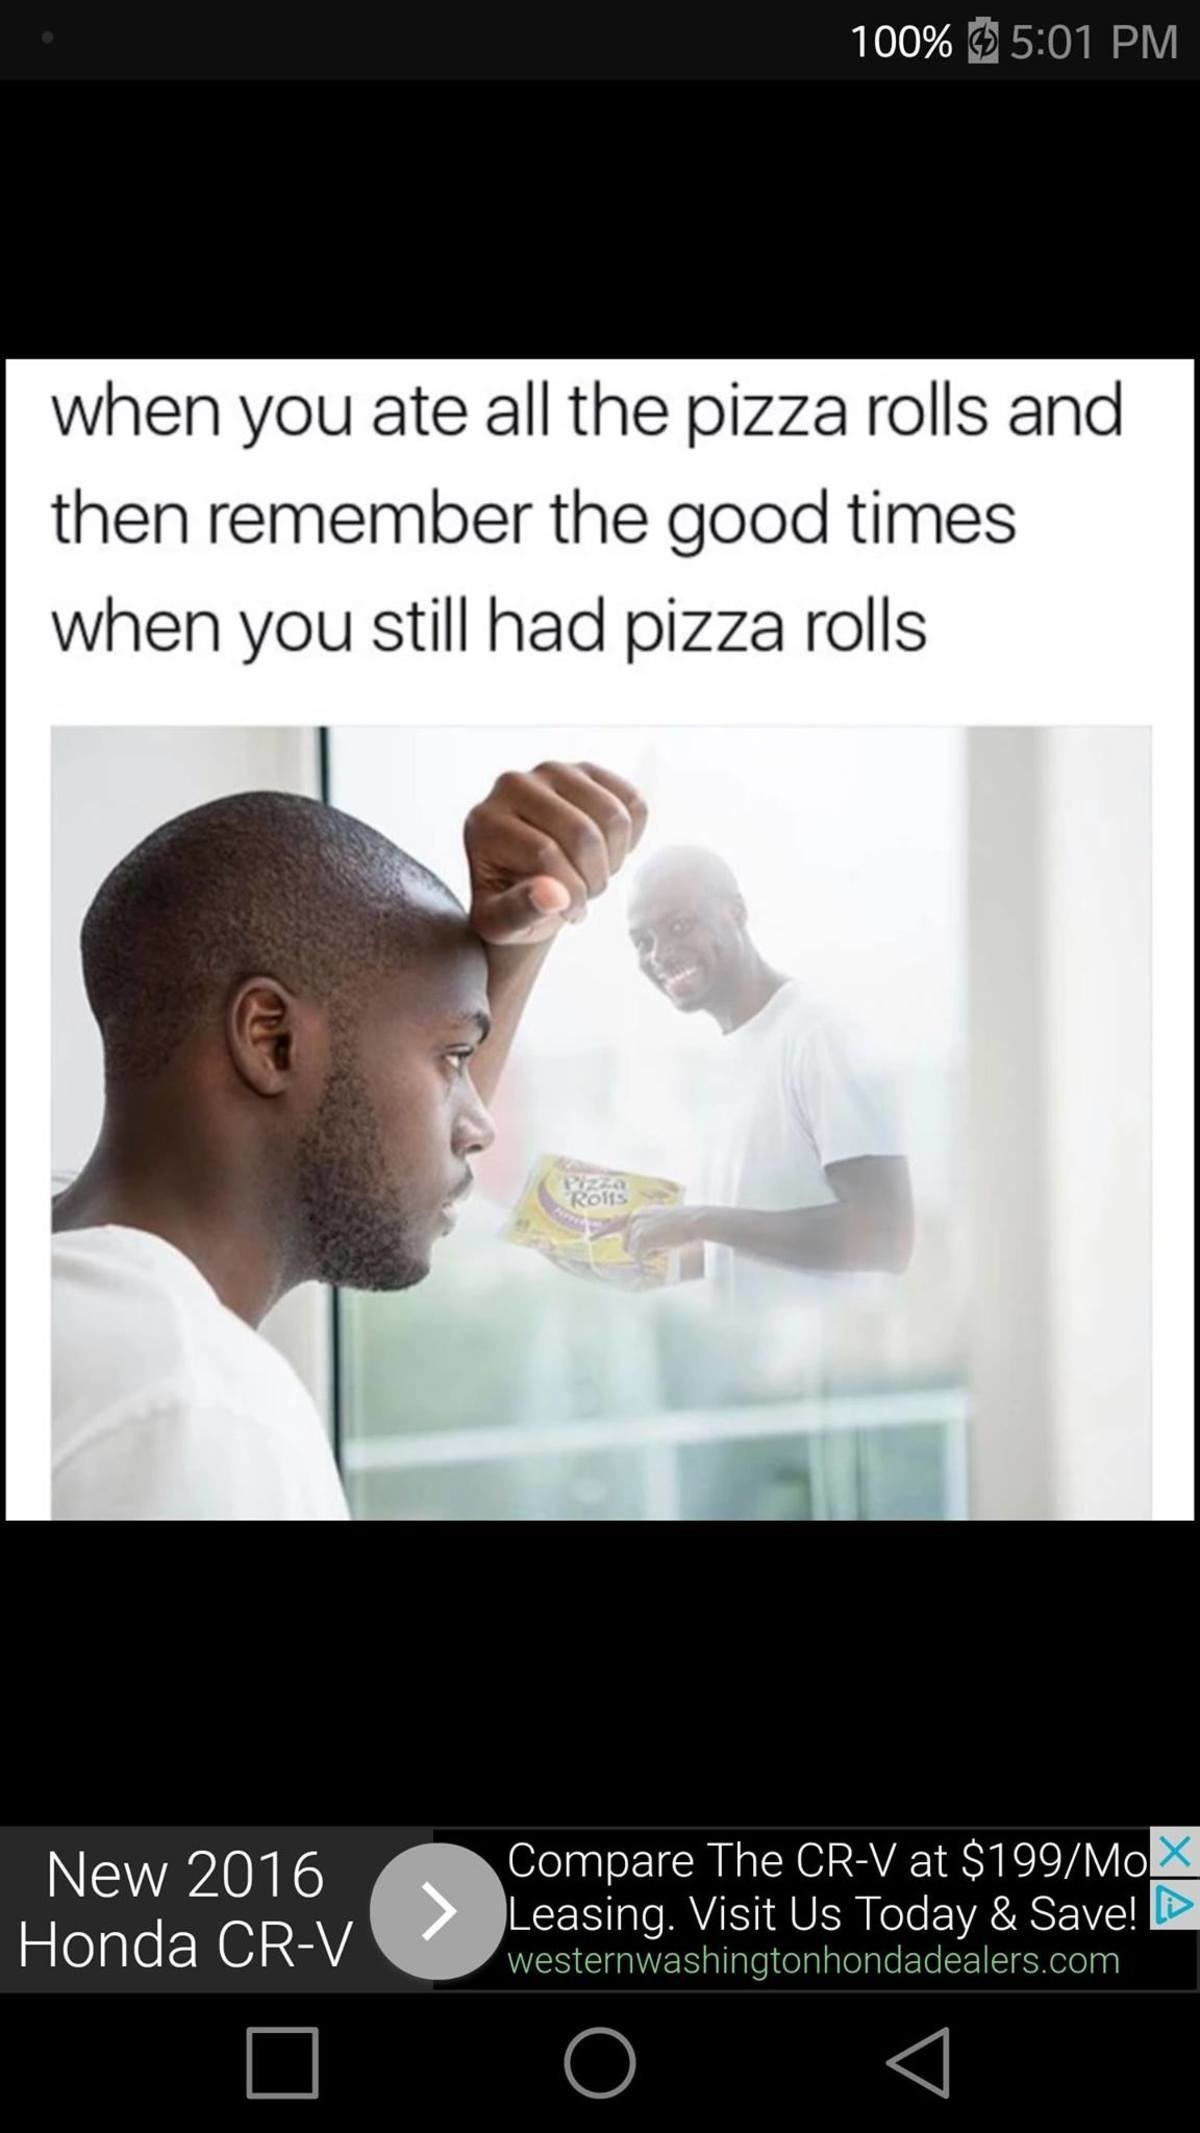 Memories of a good PIZZa time. .. The real meme